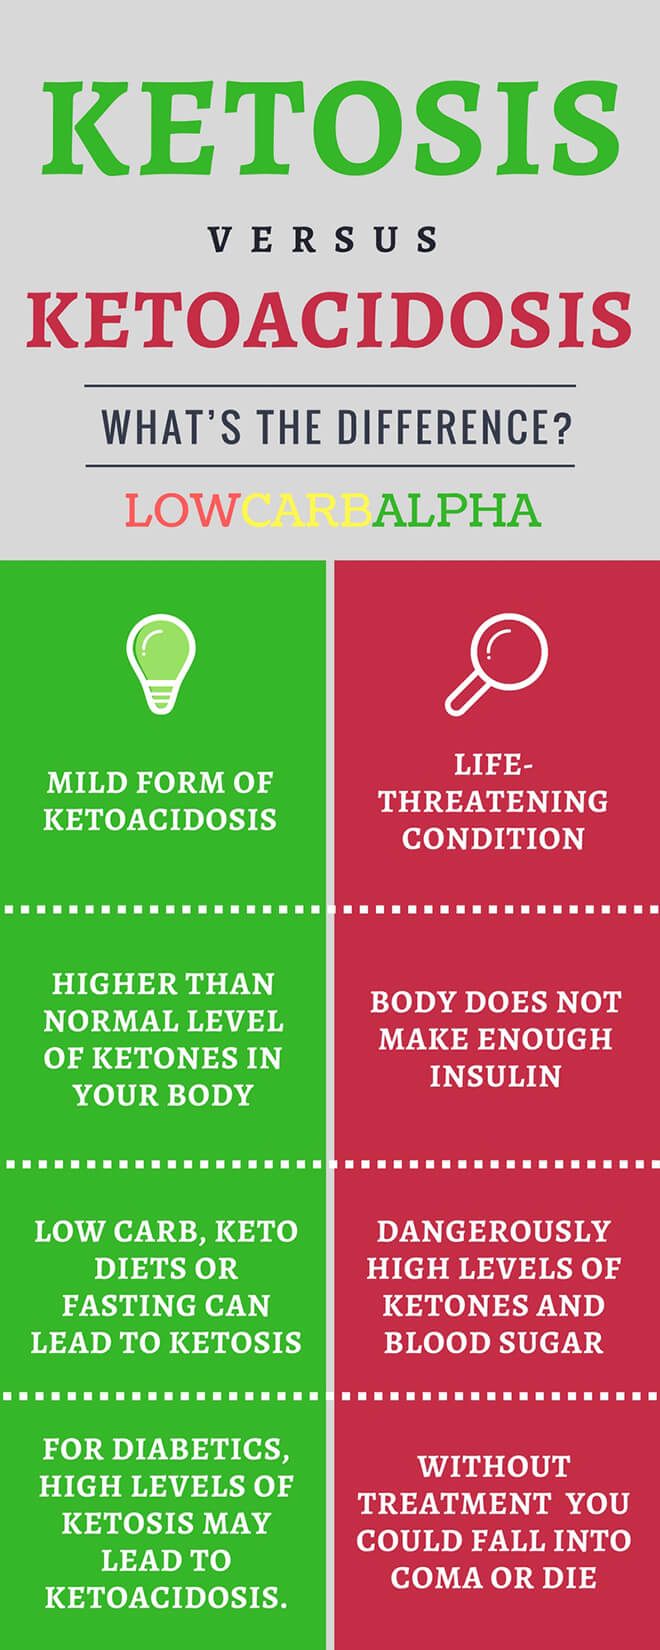 Ketoacidosis (DKA) vs Ketosis What's the Difference?